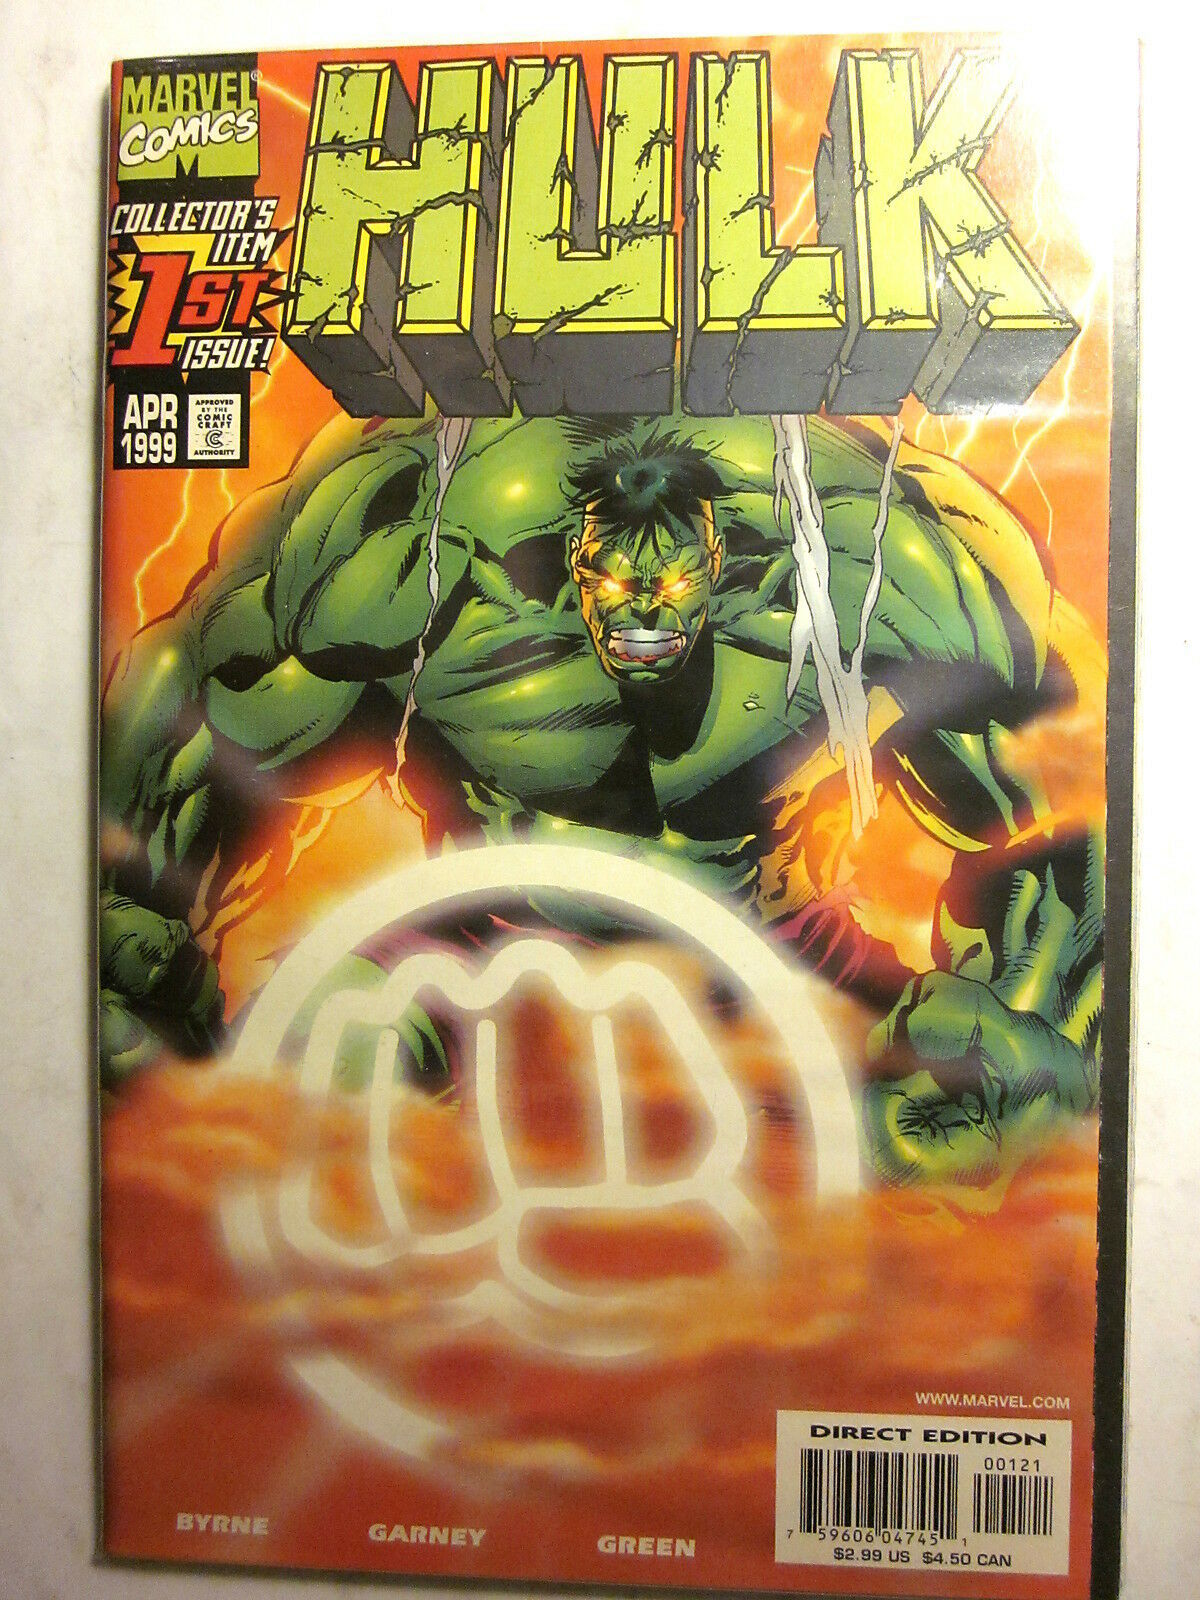 HULK #1B SUNBURST Edition + HULK #1 Regular (Apr 1999/Both NM, 9.4 in grade)